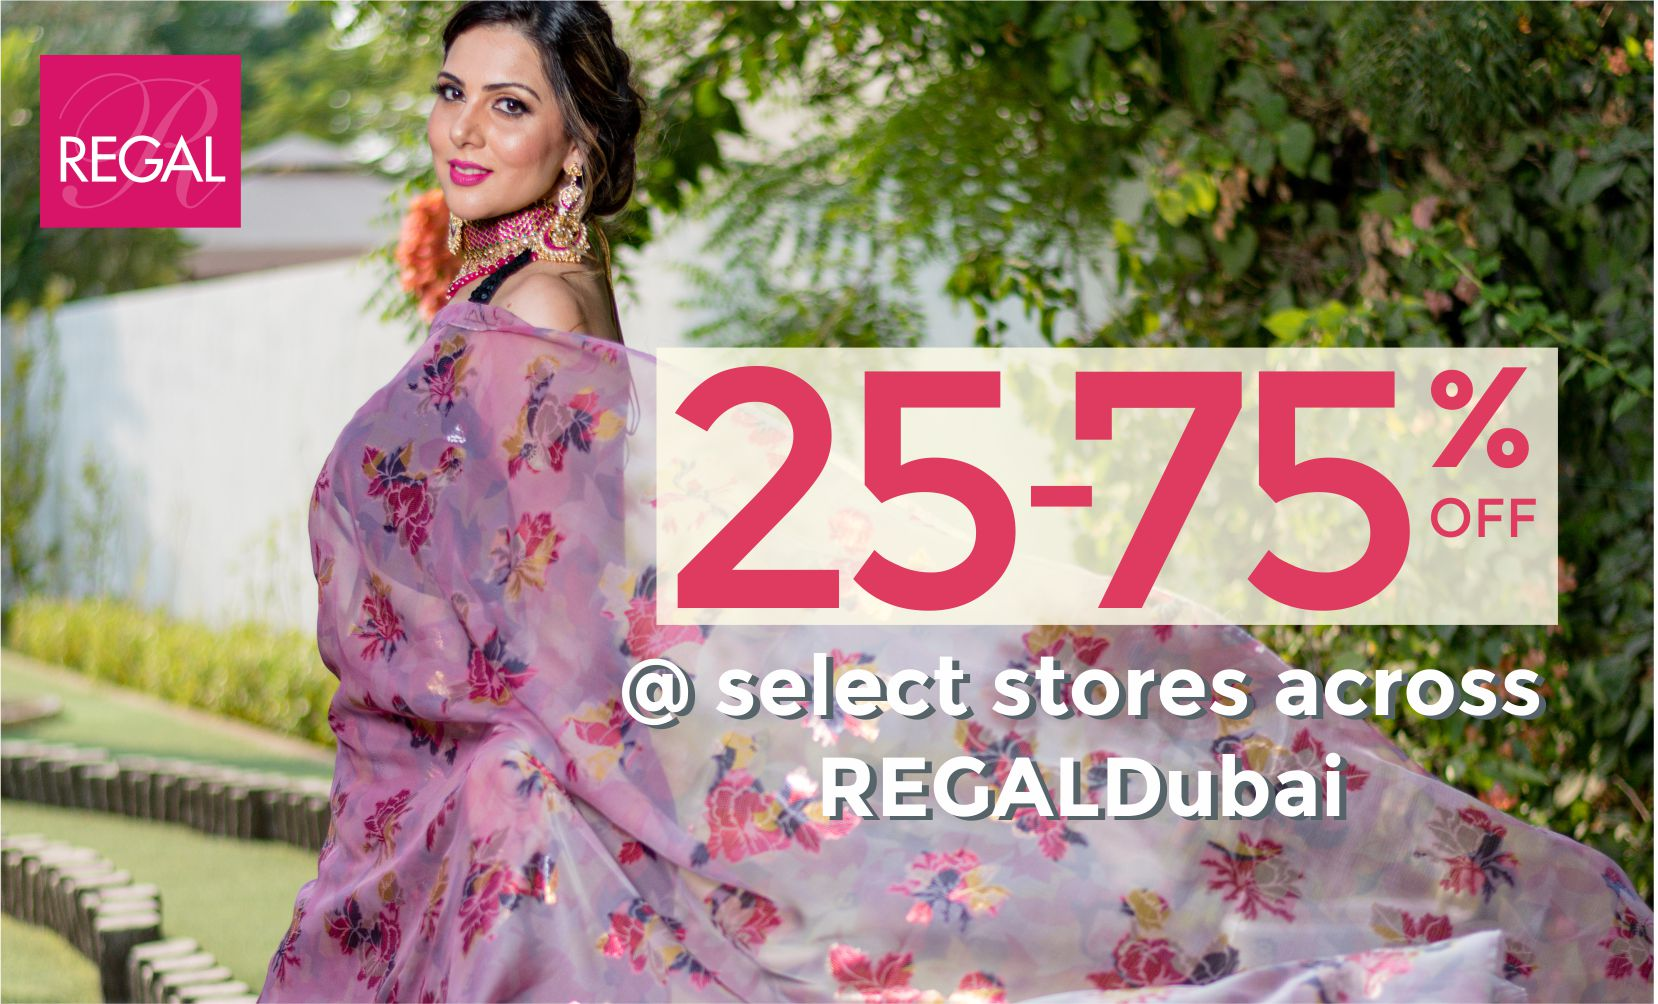 Anniversary Sale at select stores in Dubai